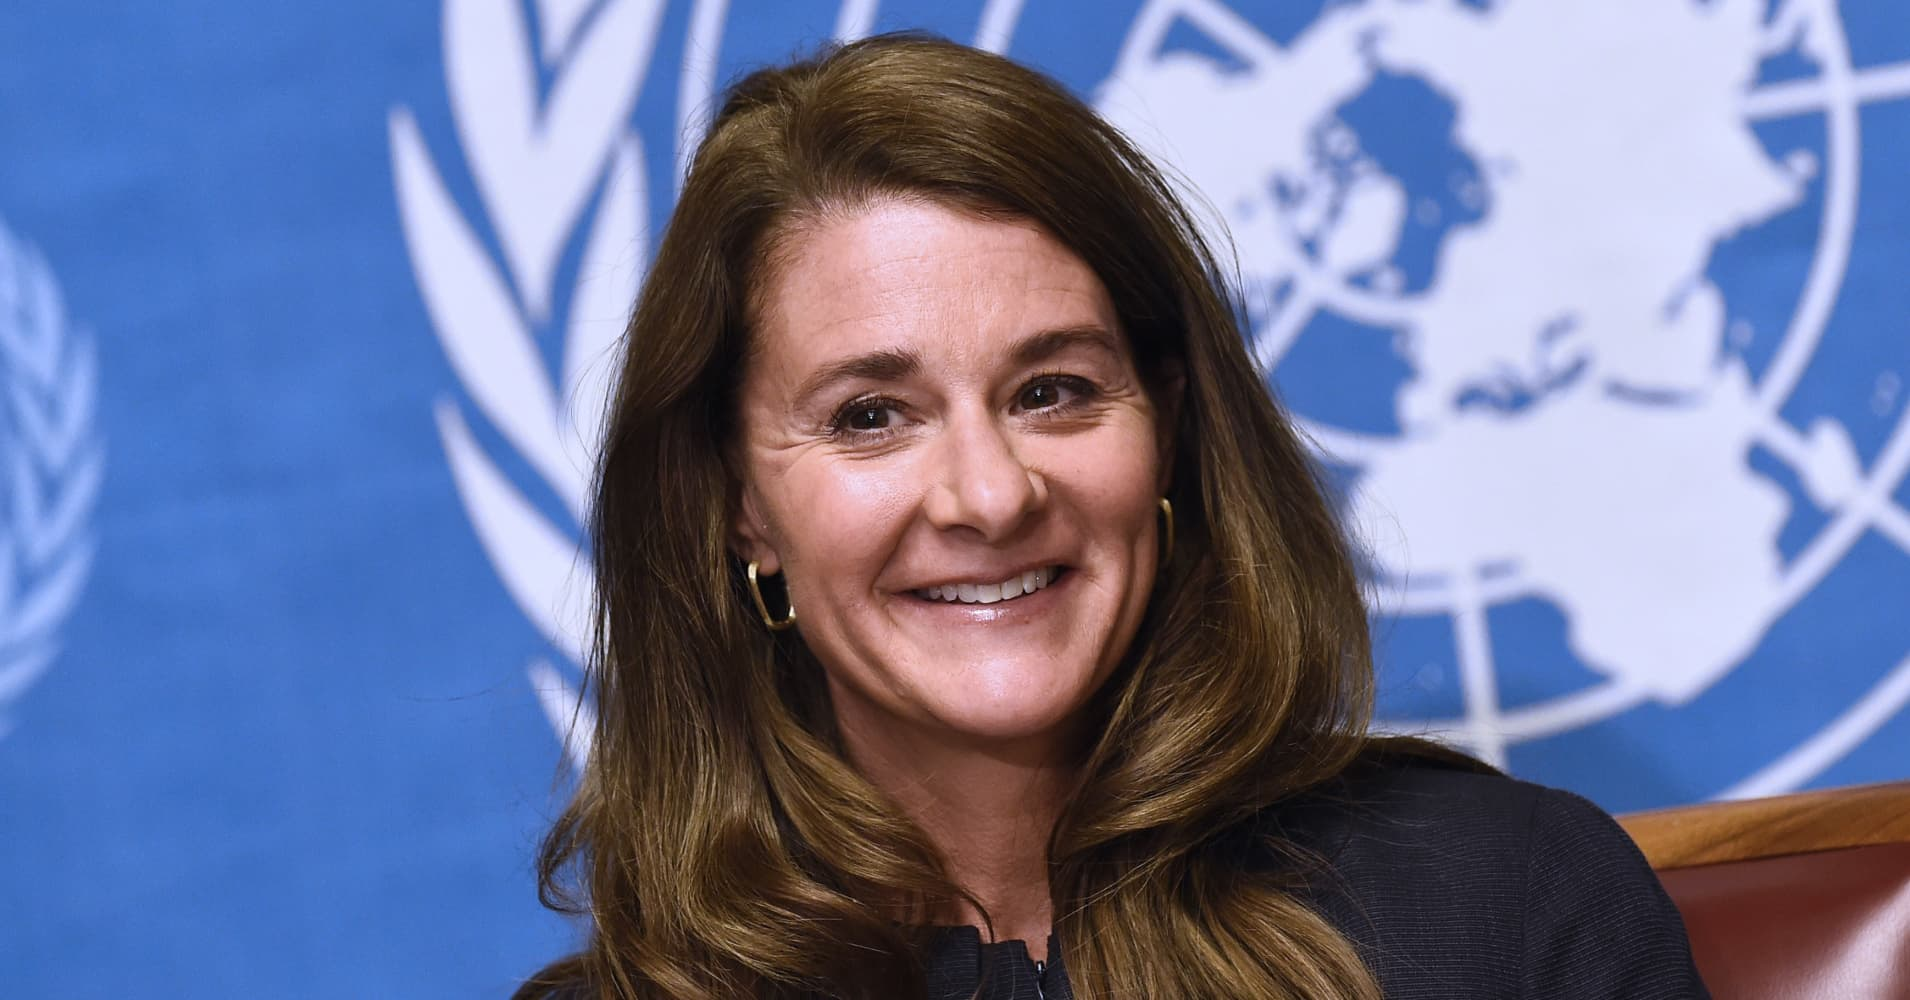 Melinda Gates, co-chair of the Bill & Melinda Gates Foundation, one of the world's most powerful philanthropic organisations.